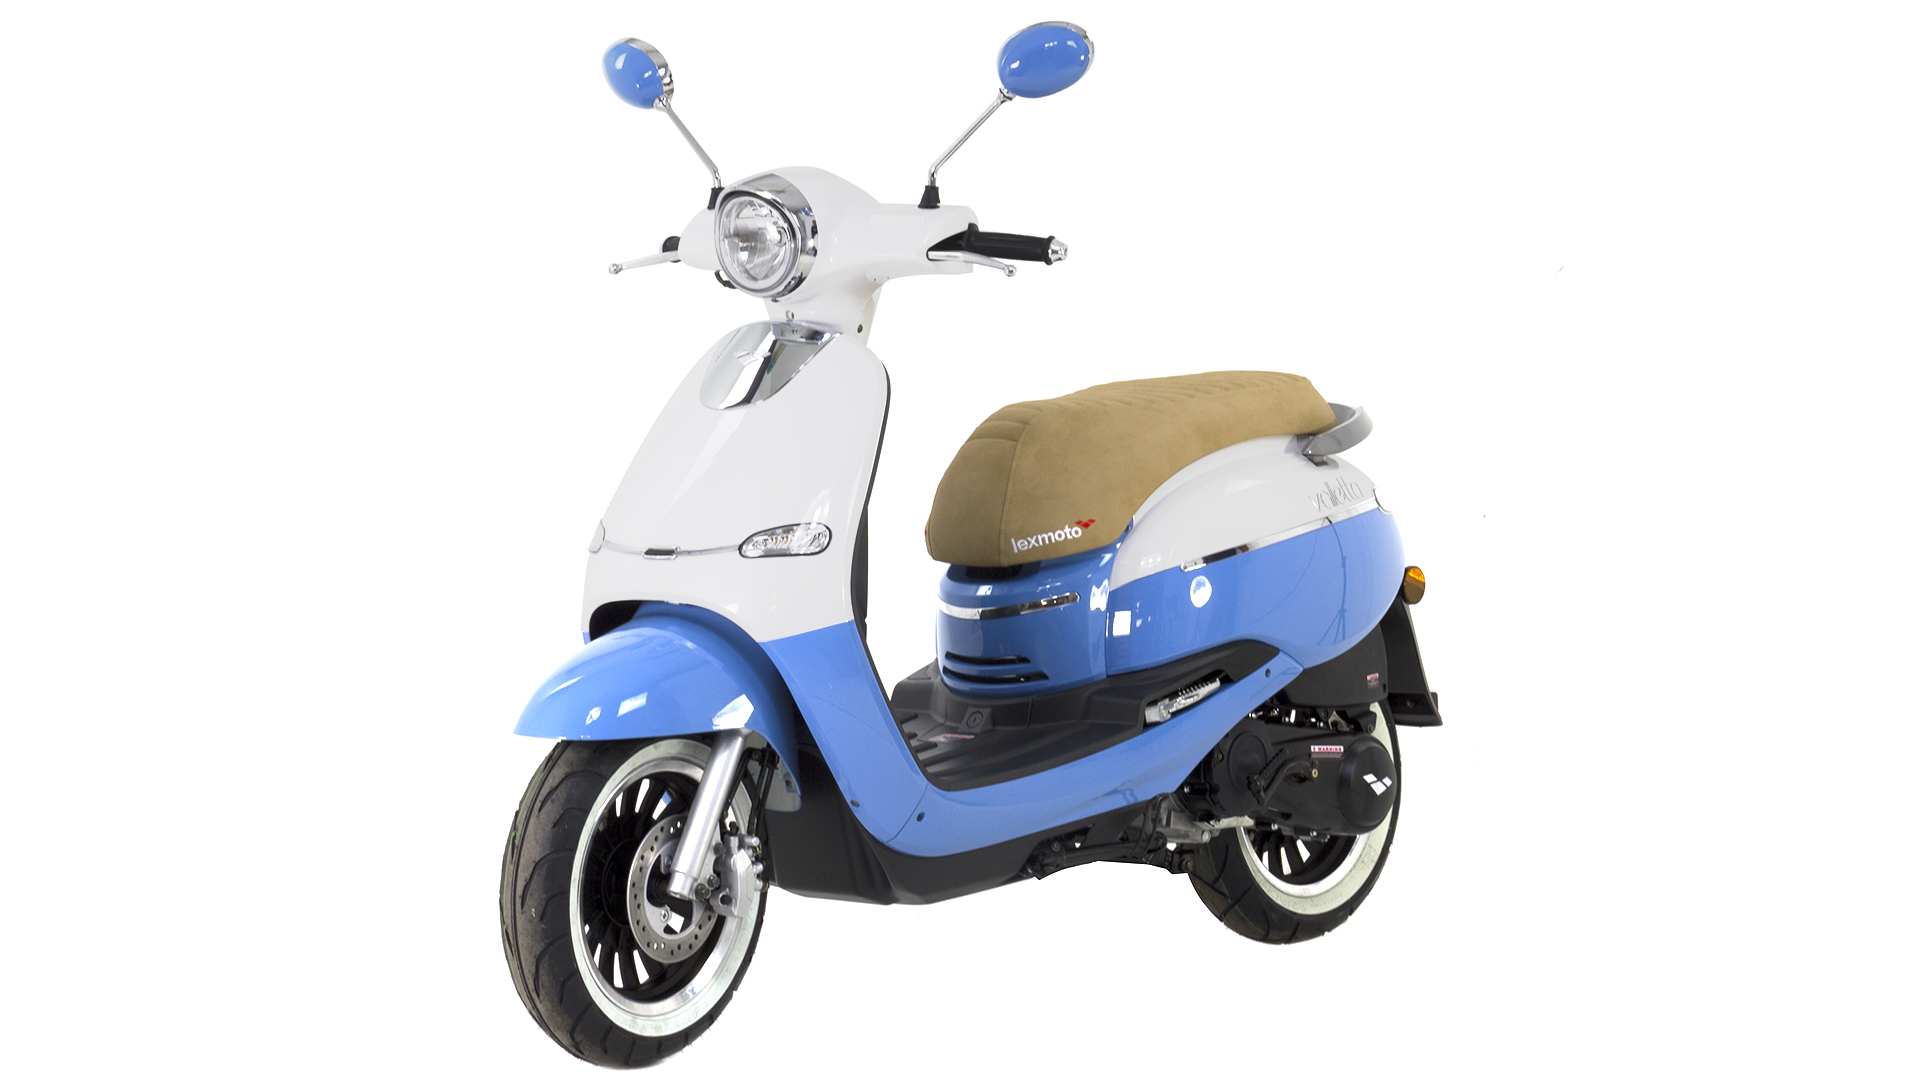 lexmoto valletta 125 zn125t y znen scooters 125cc. Black Bedroom Furniture Sets. Home Design Ideas